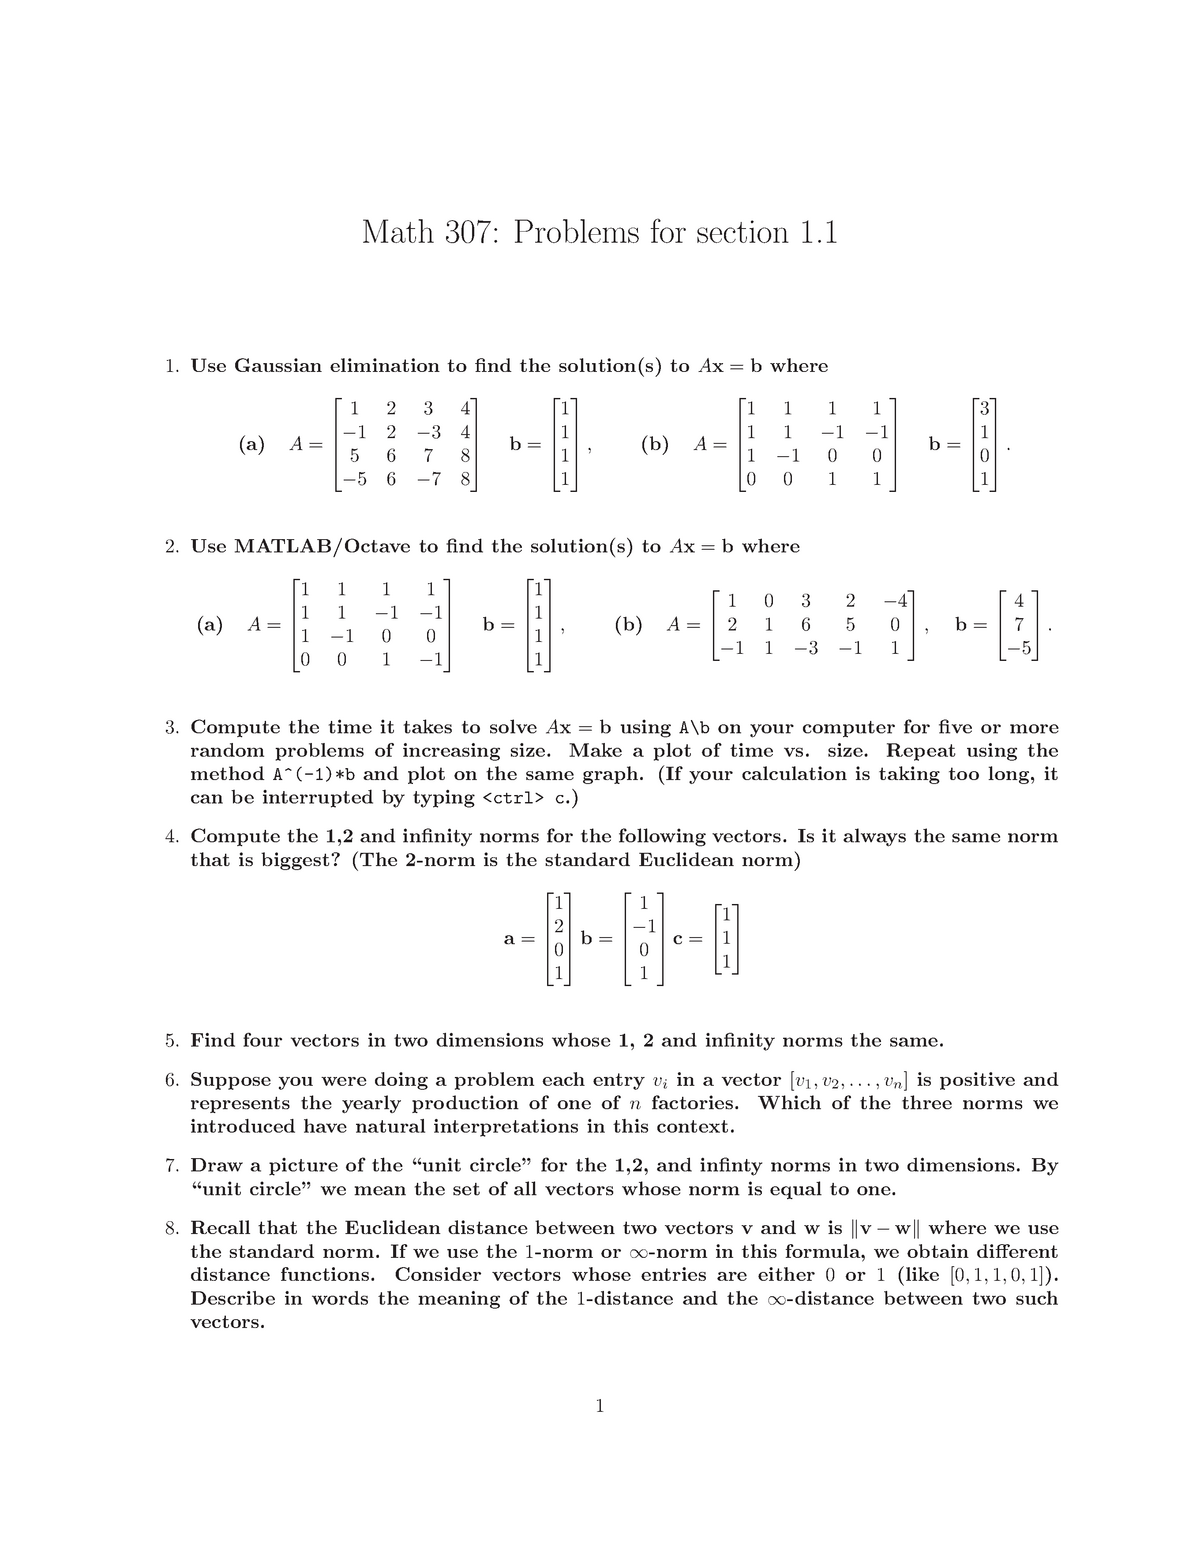 Assignment Problems and Solutions Summer 2011 - MATH 307: Applied